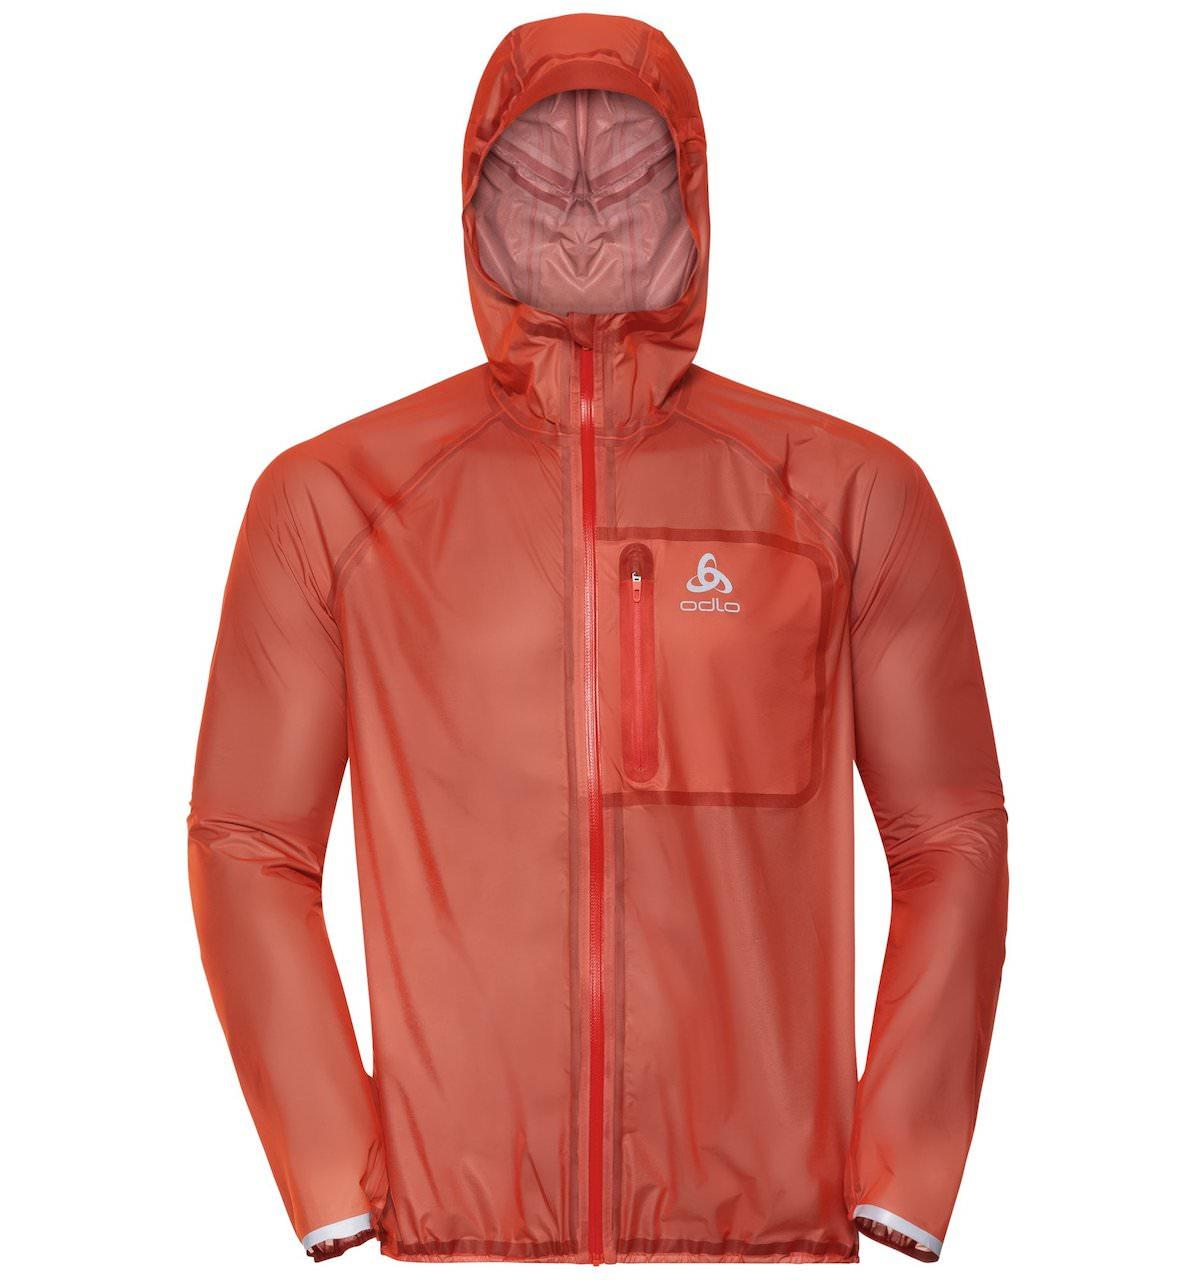 313022_30642_DualDry Runningjacket Waterproof Herren